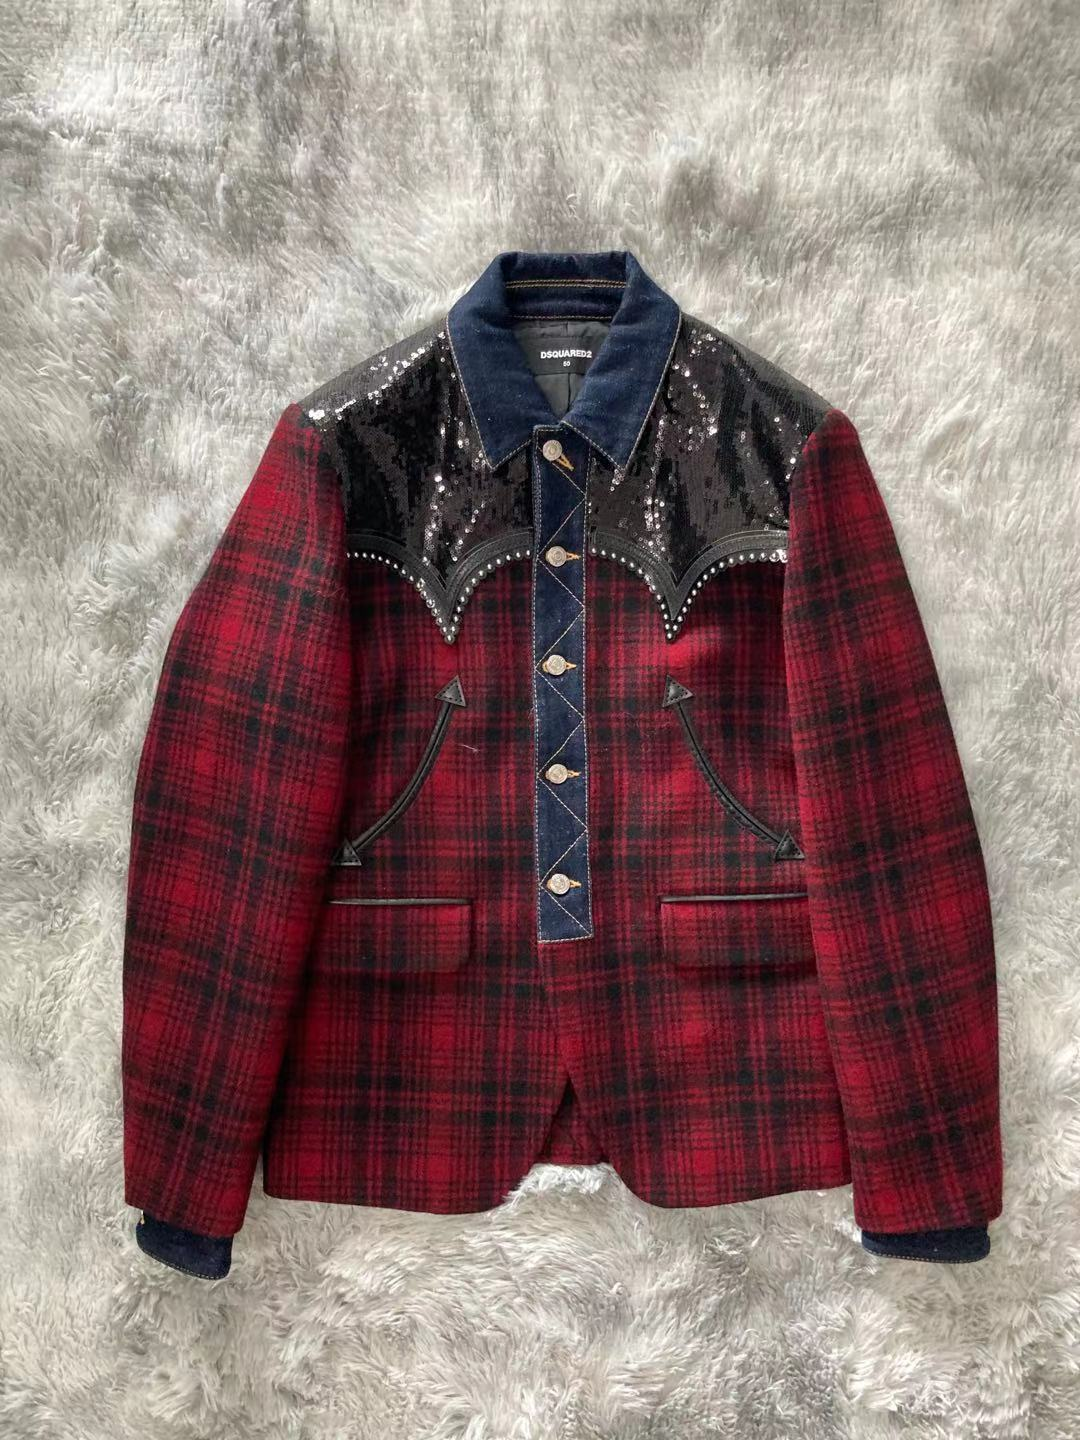 Spot Dsquared2 D2 power show autumn and winter mens Sequin patchwork tweed coat heavy checkered jacket